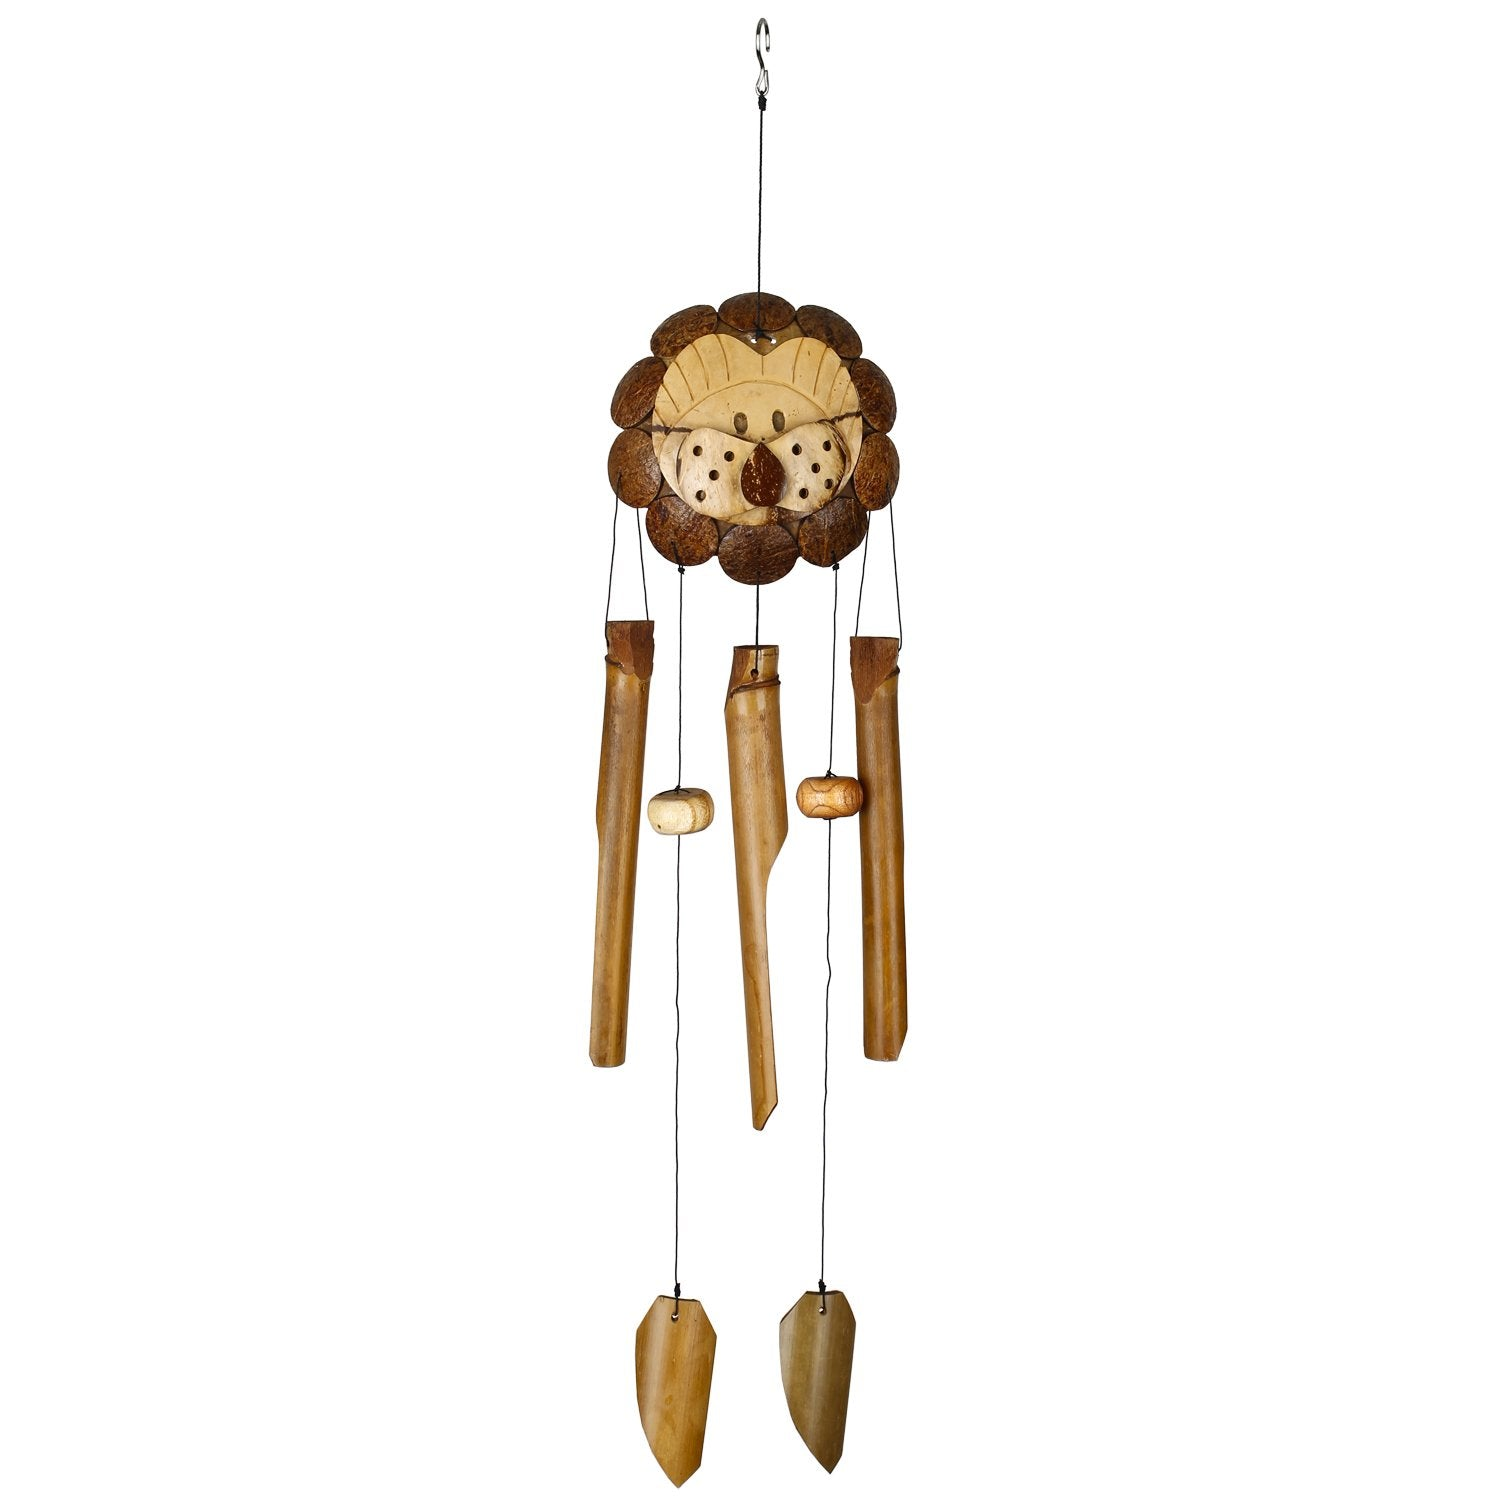 Lion Bamboo Chime full product image